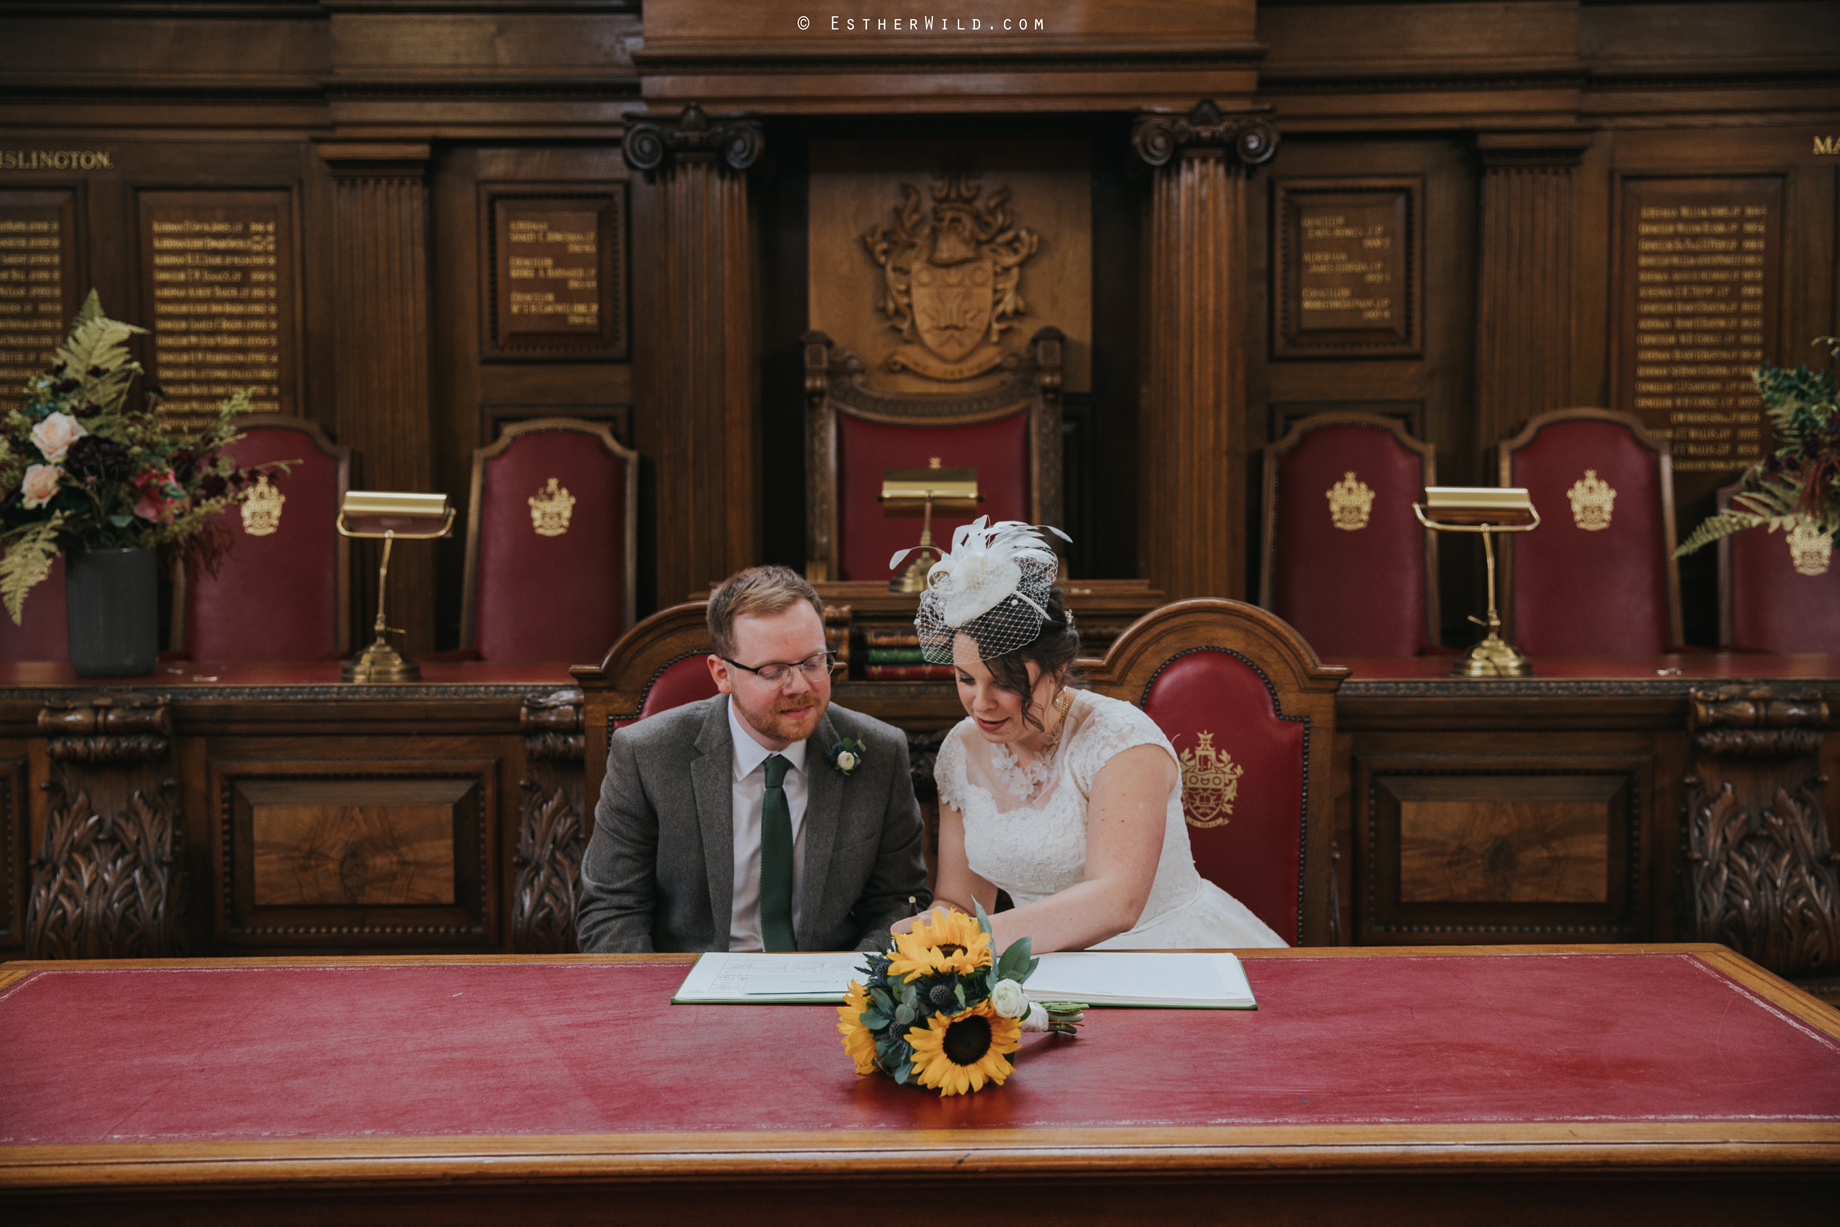 Islington_Town_Hall_Assembly_Hall_Council_Chamber_The_Star_Pub_London_Sacred_Wedding_Copyright_Esther_Wild_Photographer_IMG_0451.jpg